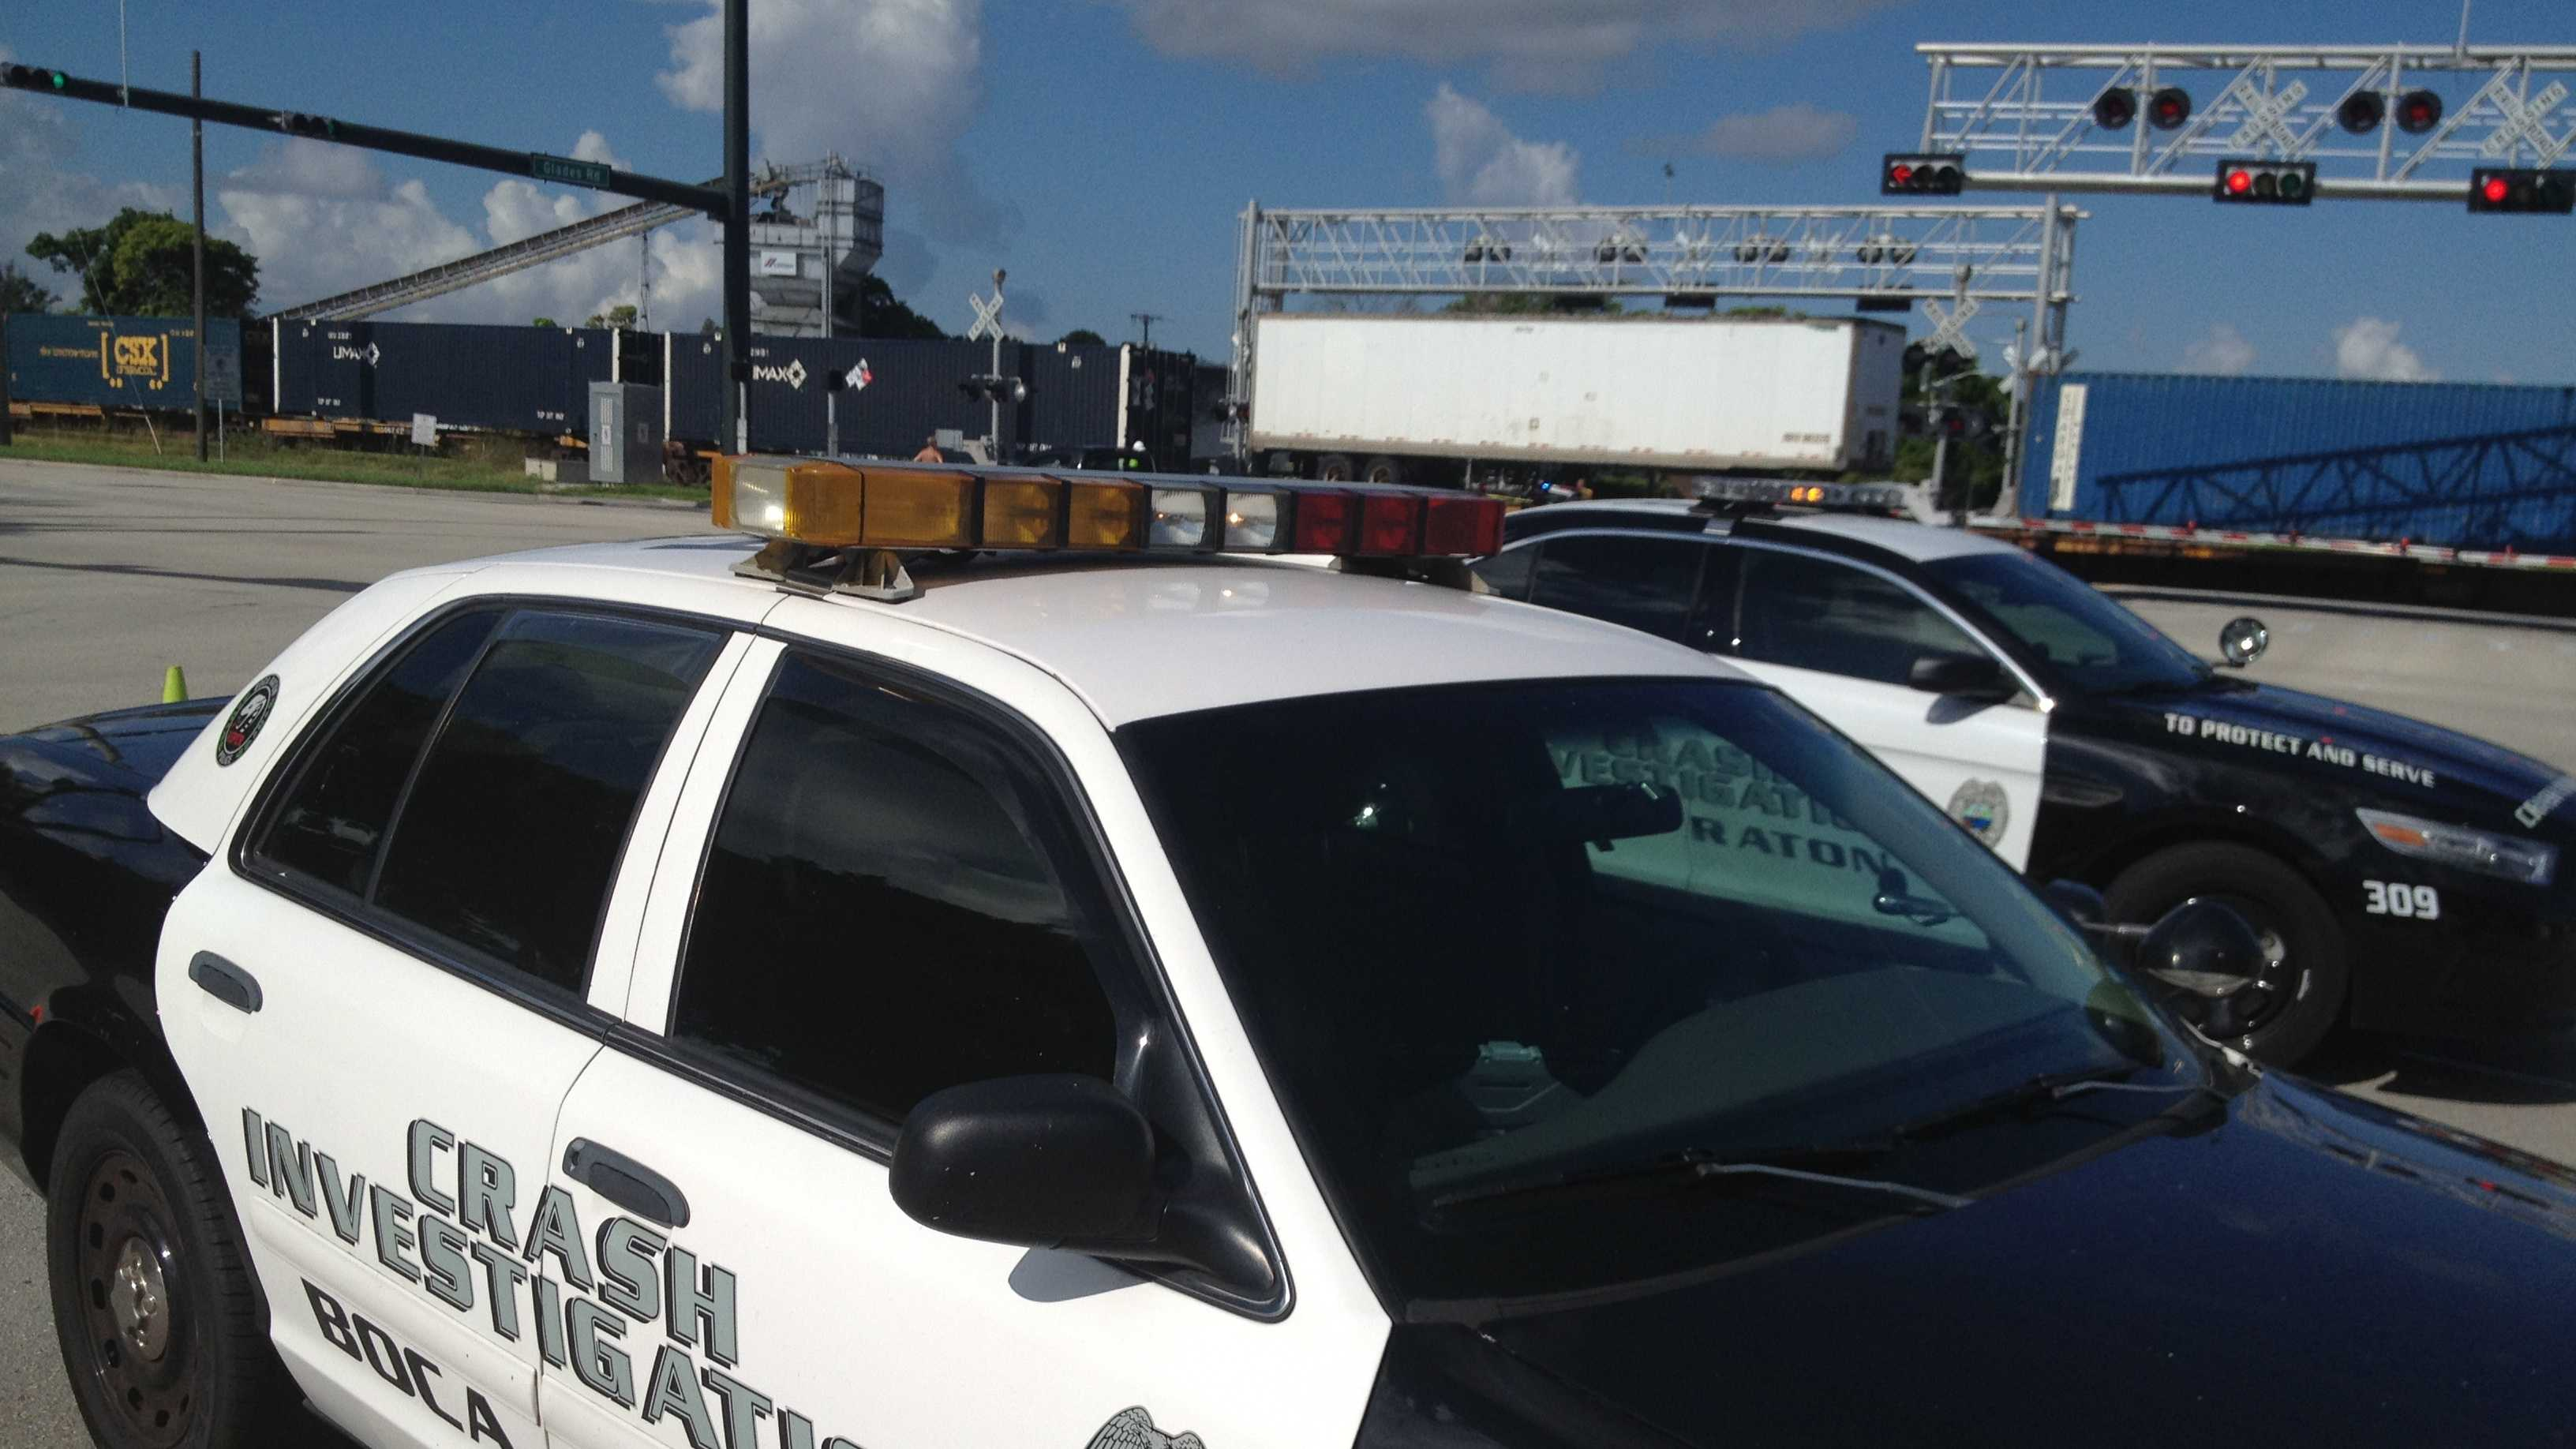 A CSX train blocks the intersection of Dixie Highway and Glades Road in Boca Raton after a fatal crash.